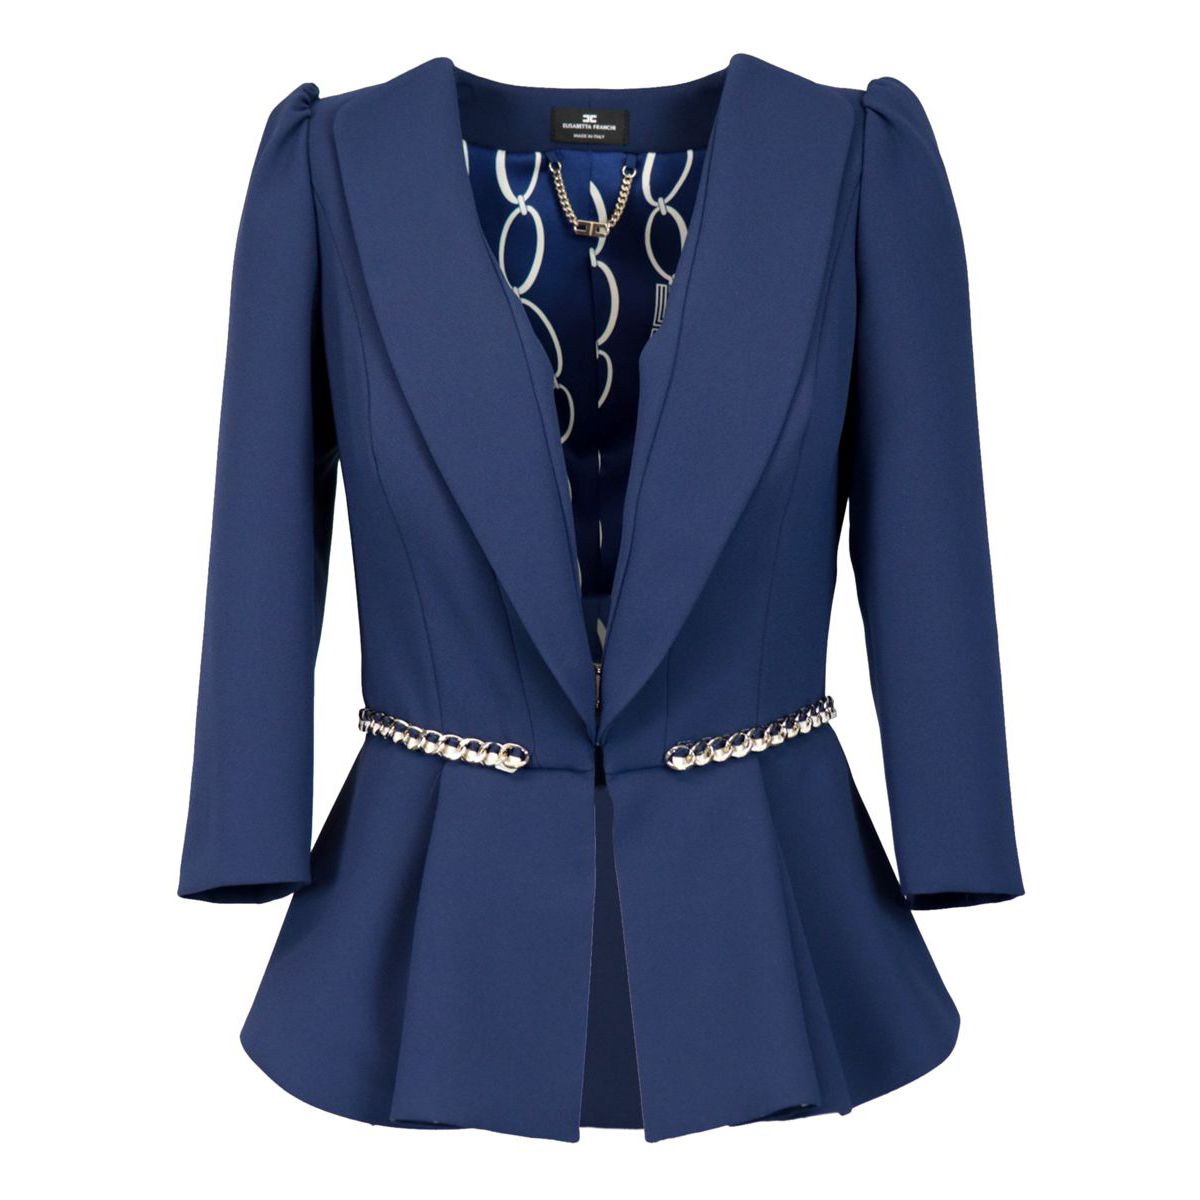 Crepe jacket with waist chain Navy blue Elisabetta Franchi